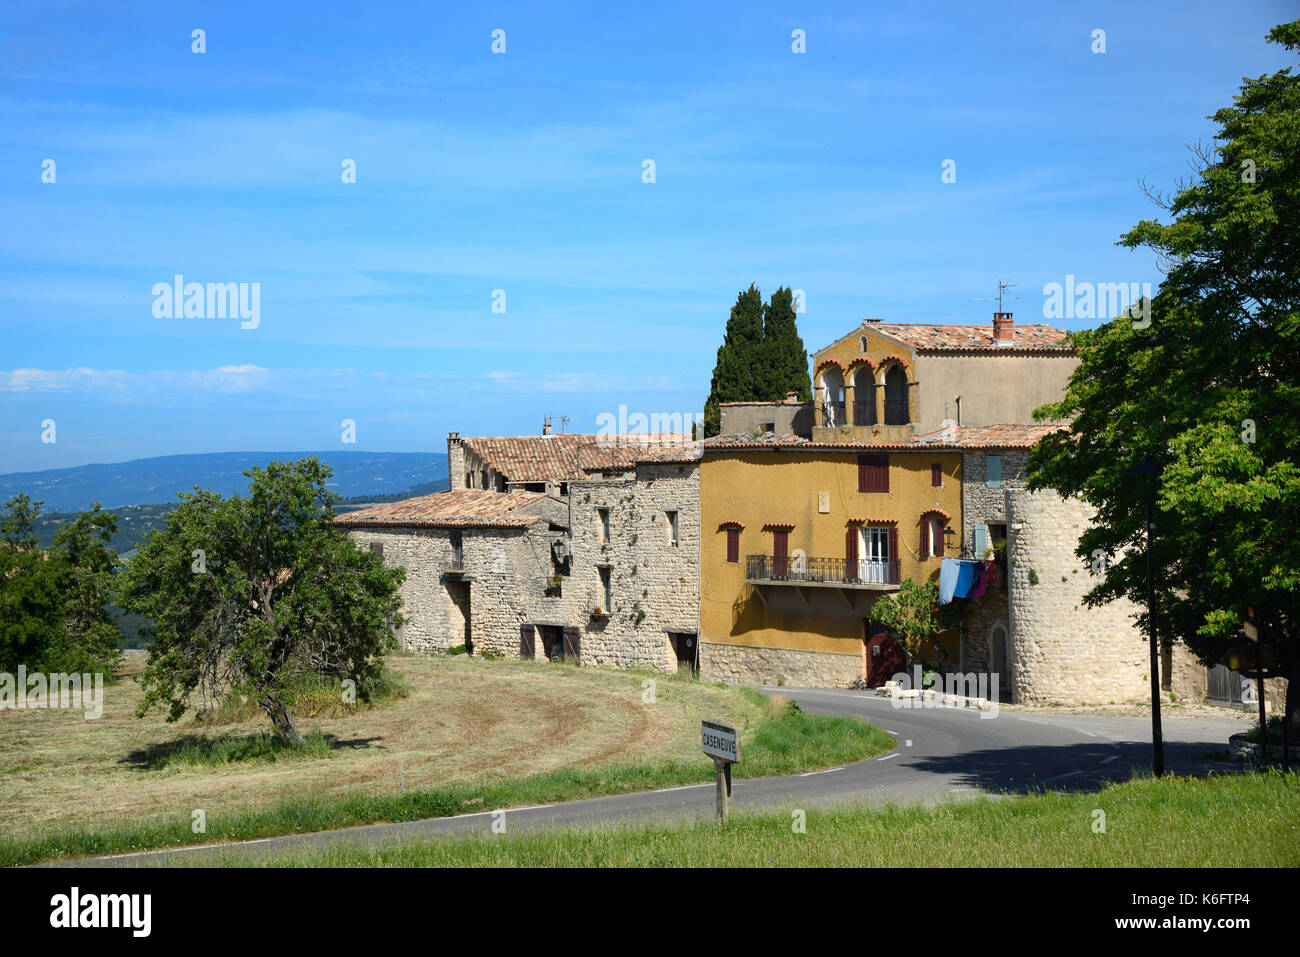 View of the Perched Village or Hilltop Village of Caseneuve in the Luberon Regional Park Vaucluse Provence France - Stock Image